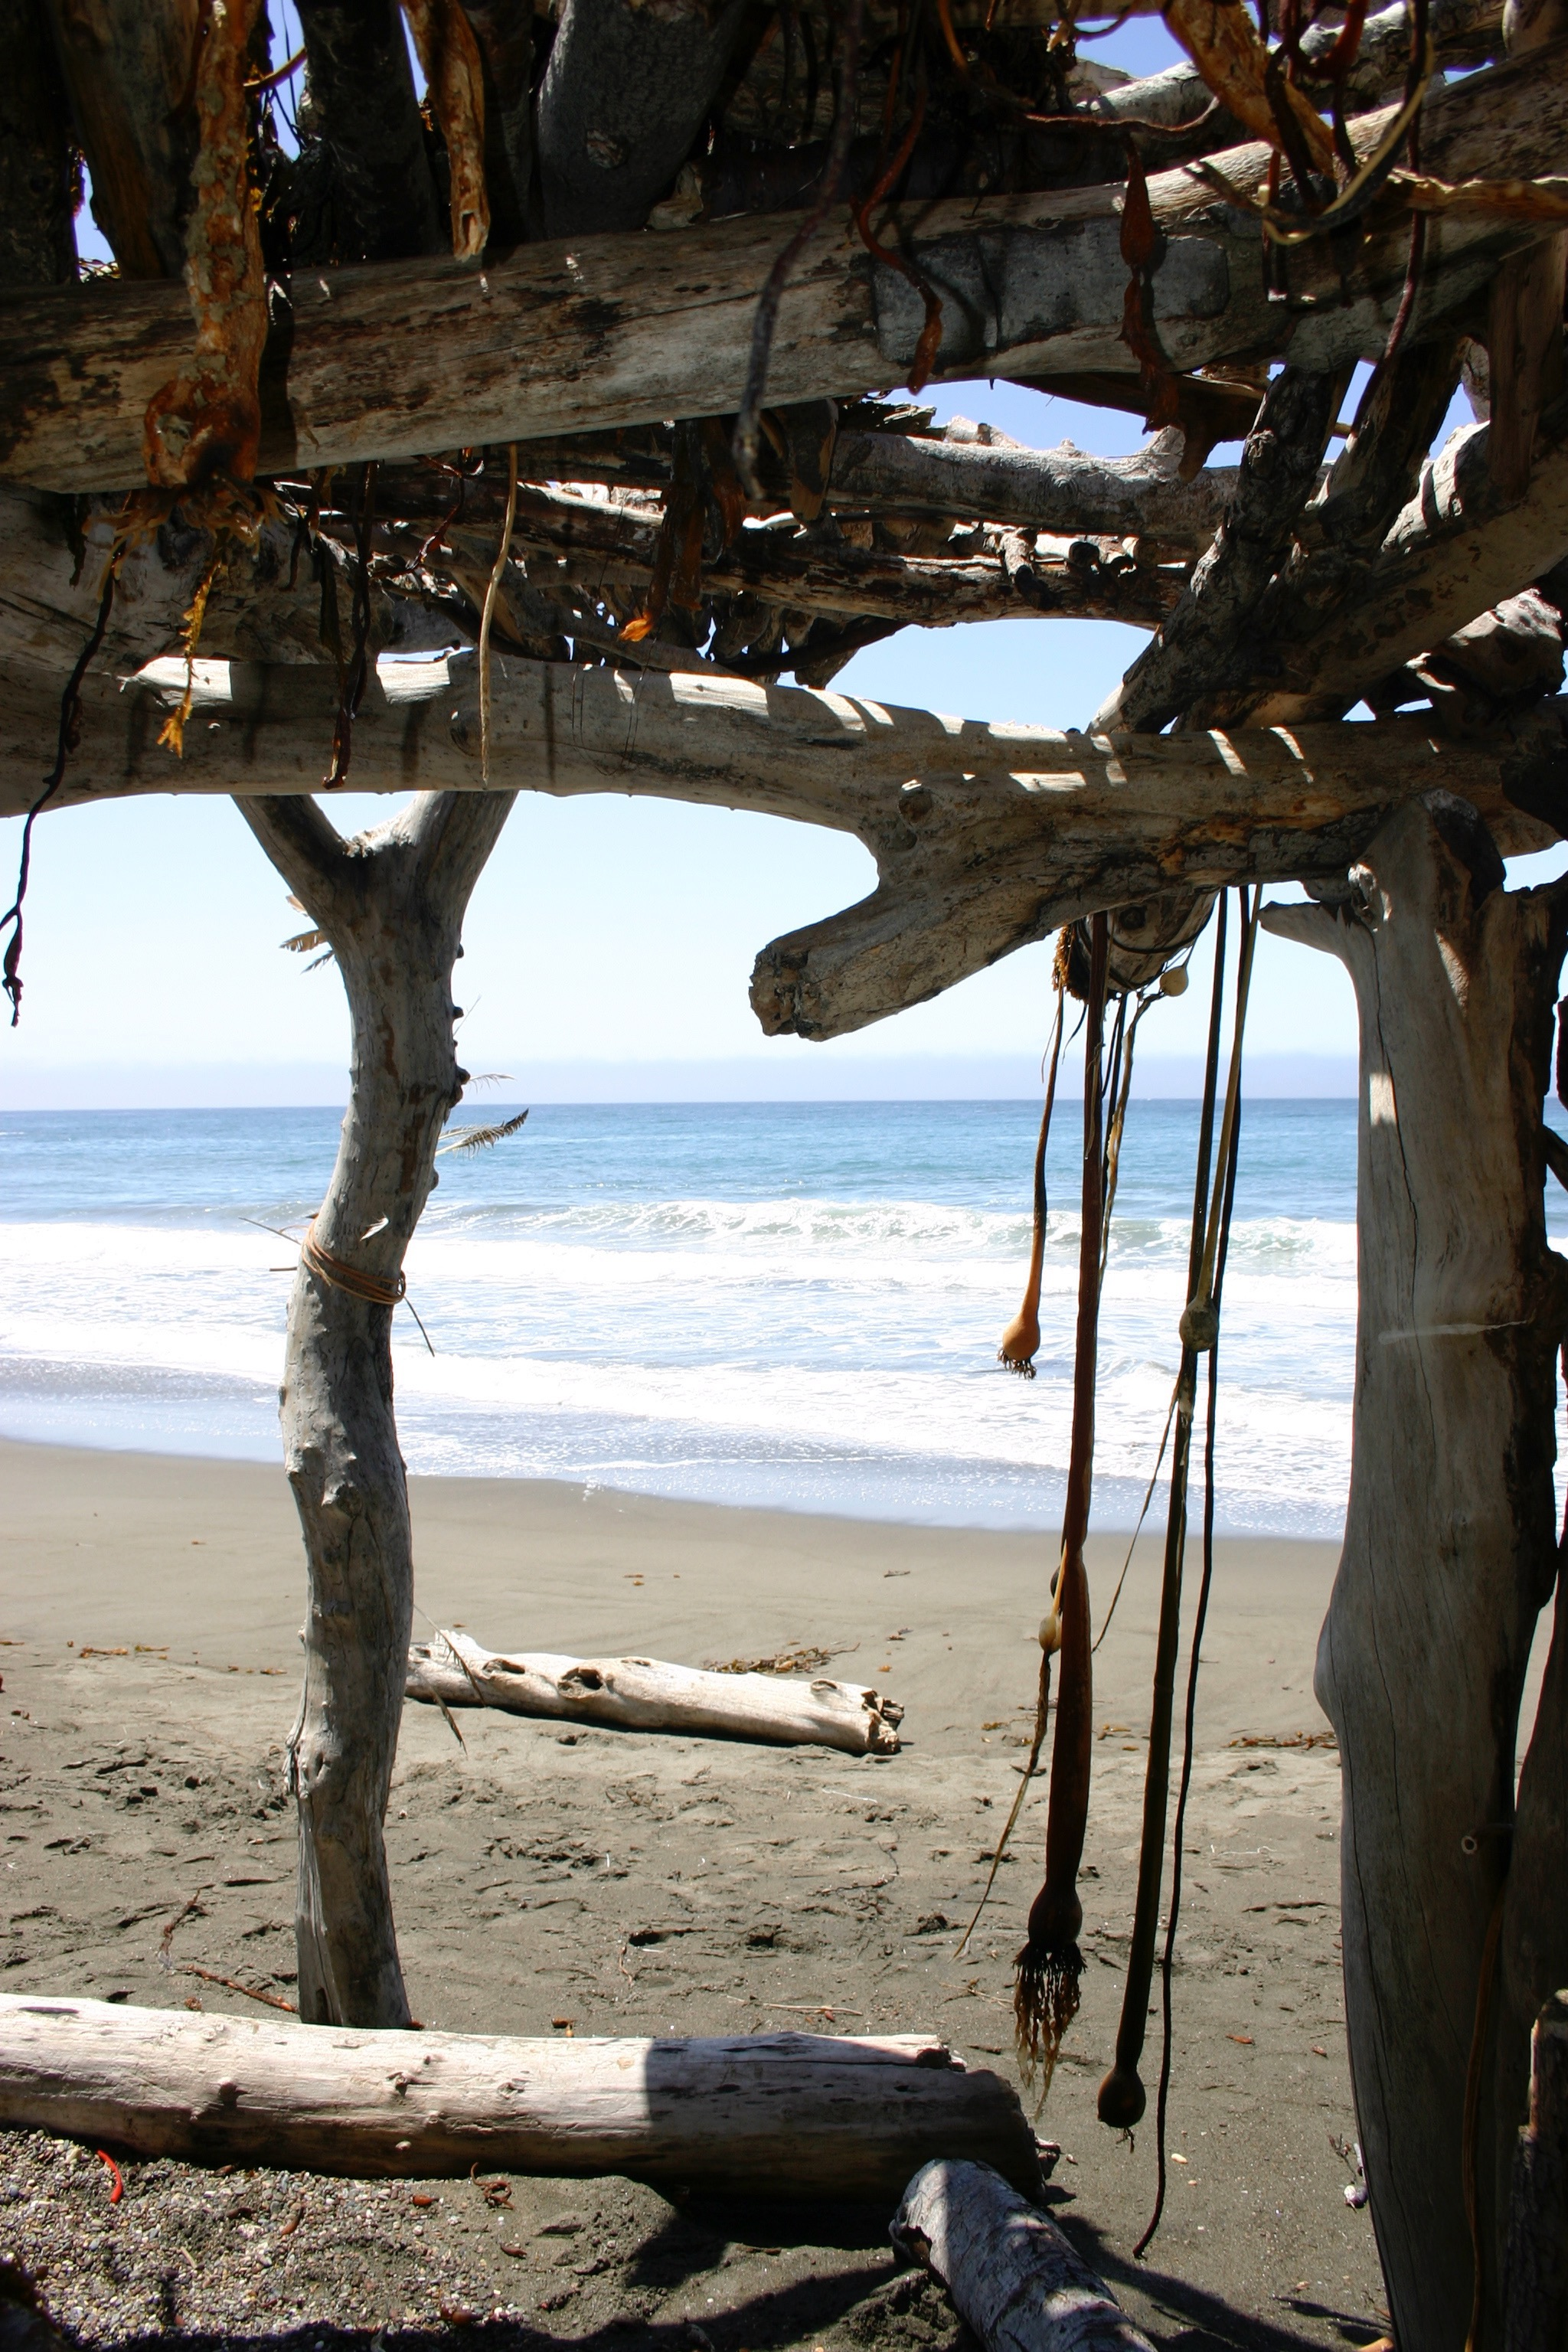 Inside a hut constructed of driftwood and seaweed on the beach.